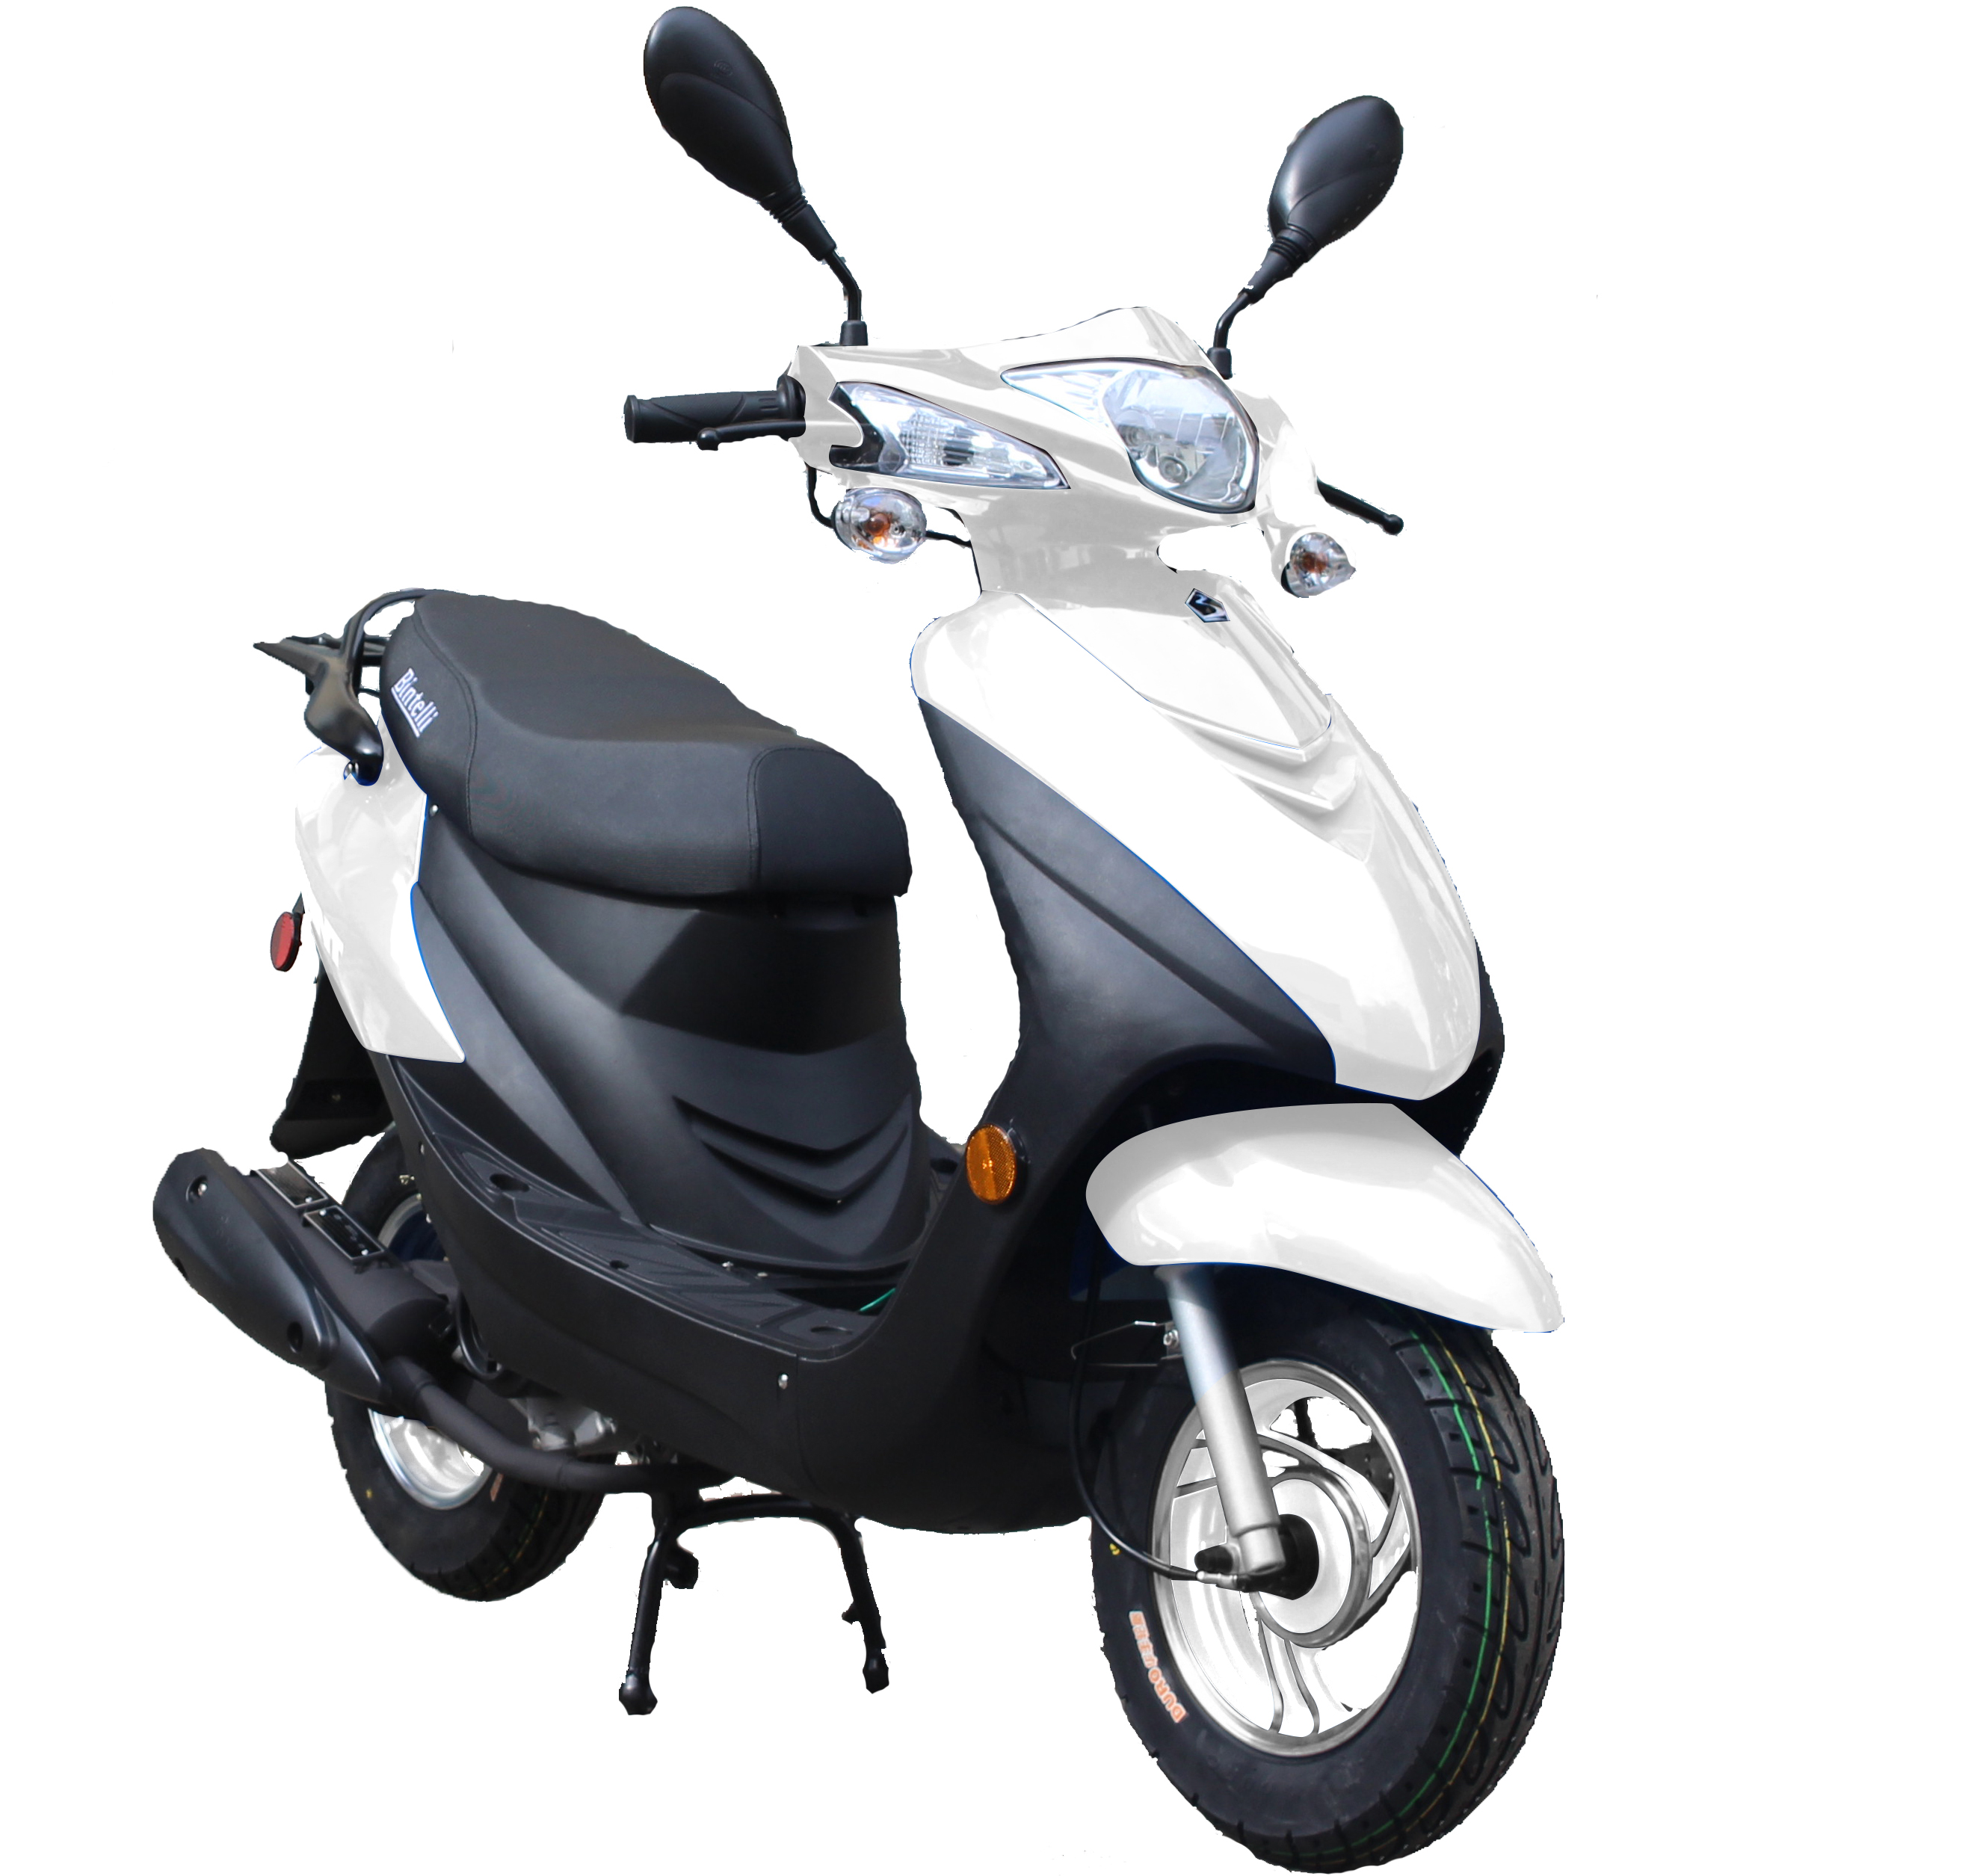 Scooters/Motorcycles | Streetside Scooters - New Scooters